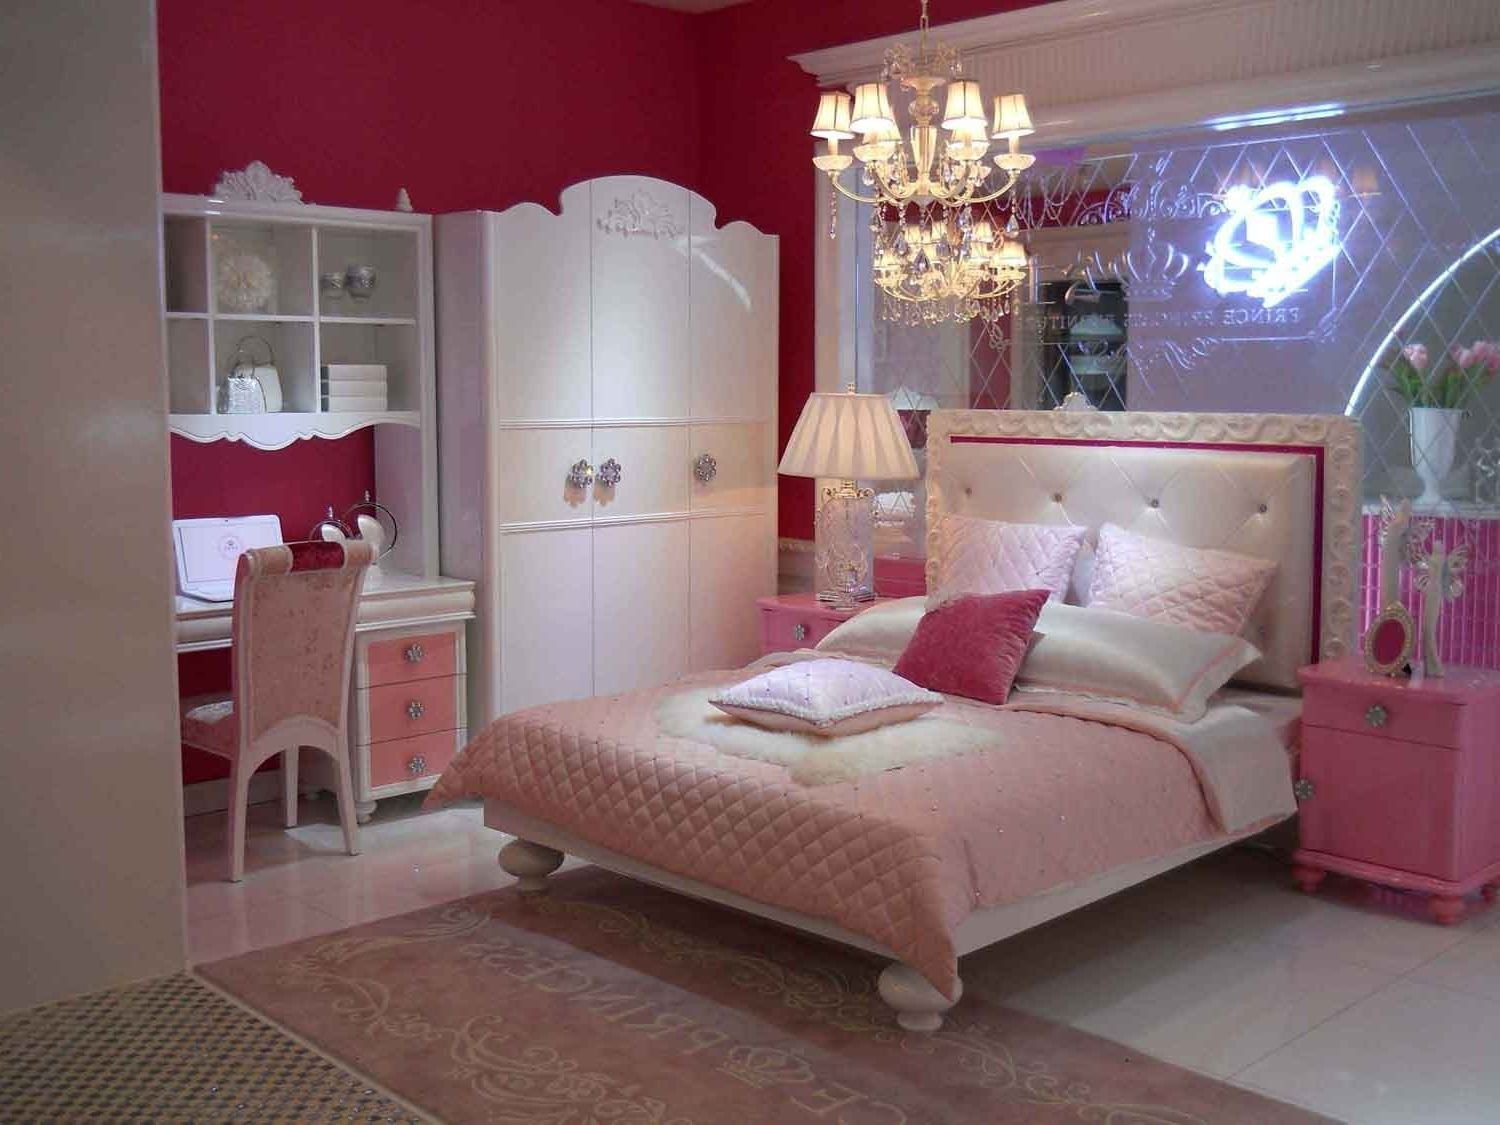 Girl Princess Bedroom Set Inspirational Bedroom Decor Princess Kids Bedroom Sets Furniture Sleeping